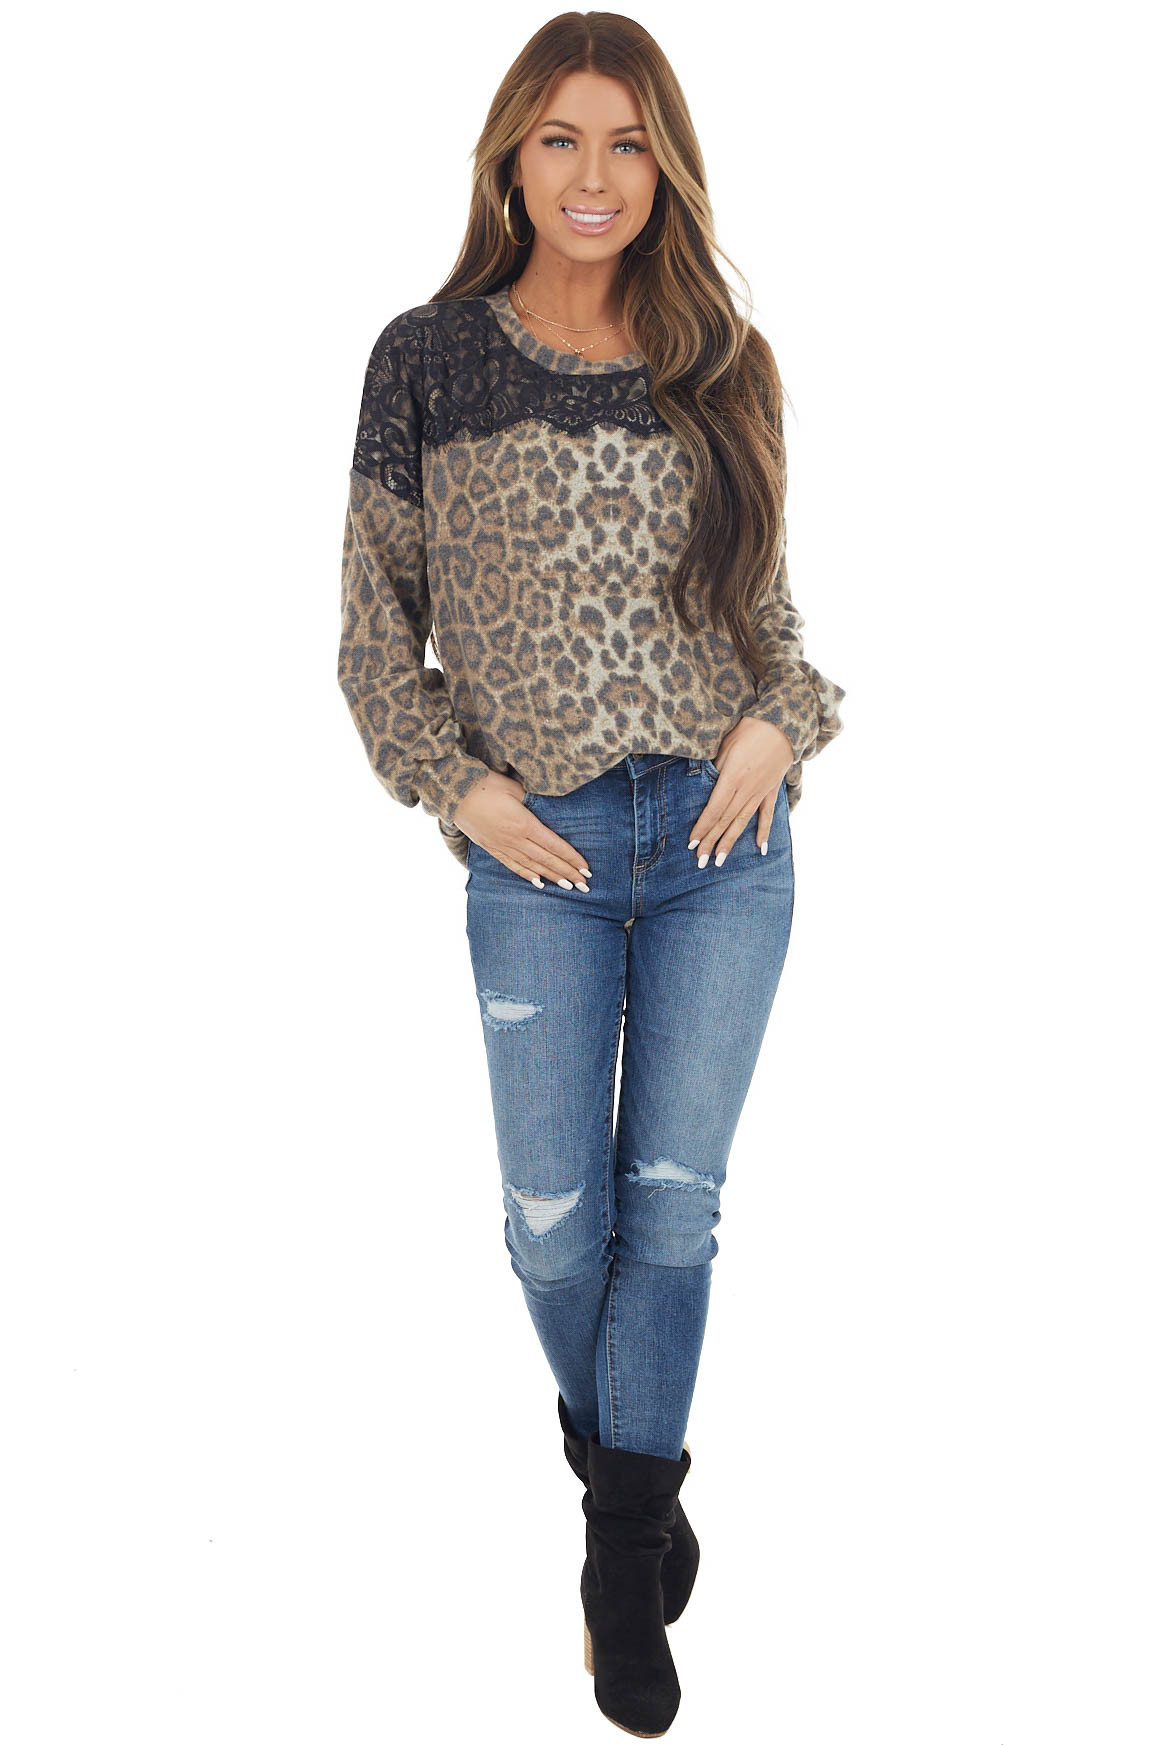 Faded Cognac Leopard Print Long Sleeve Top with Lace Detail